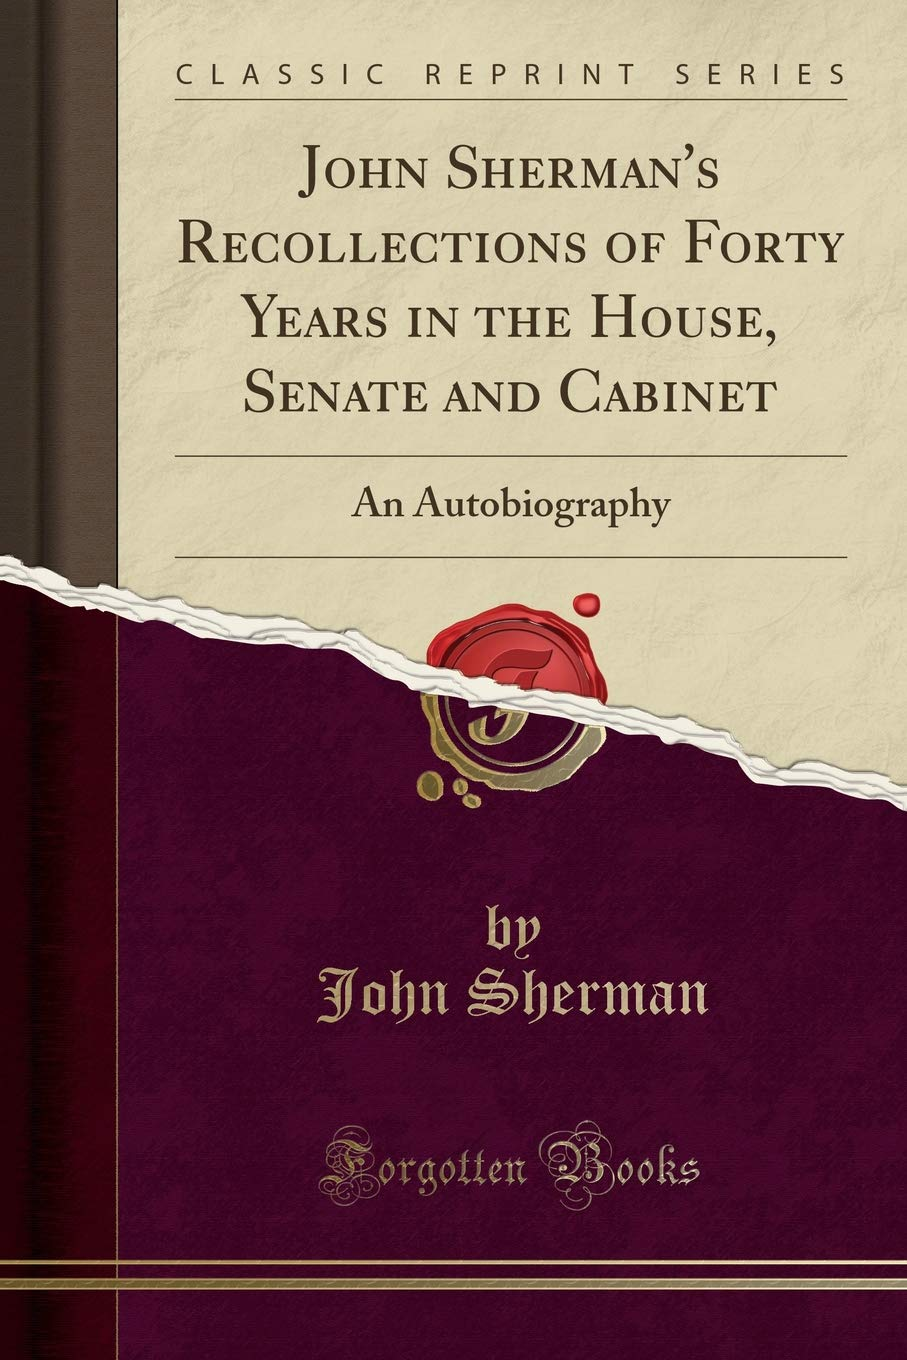 John Sherman's Recollections of Forty Years in the House, Senate and Cabinet: An Autobiography (Classic Reprint) ebook